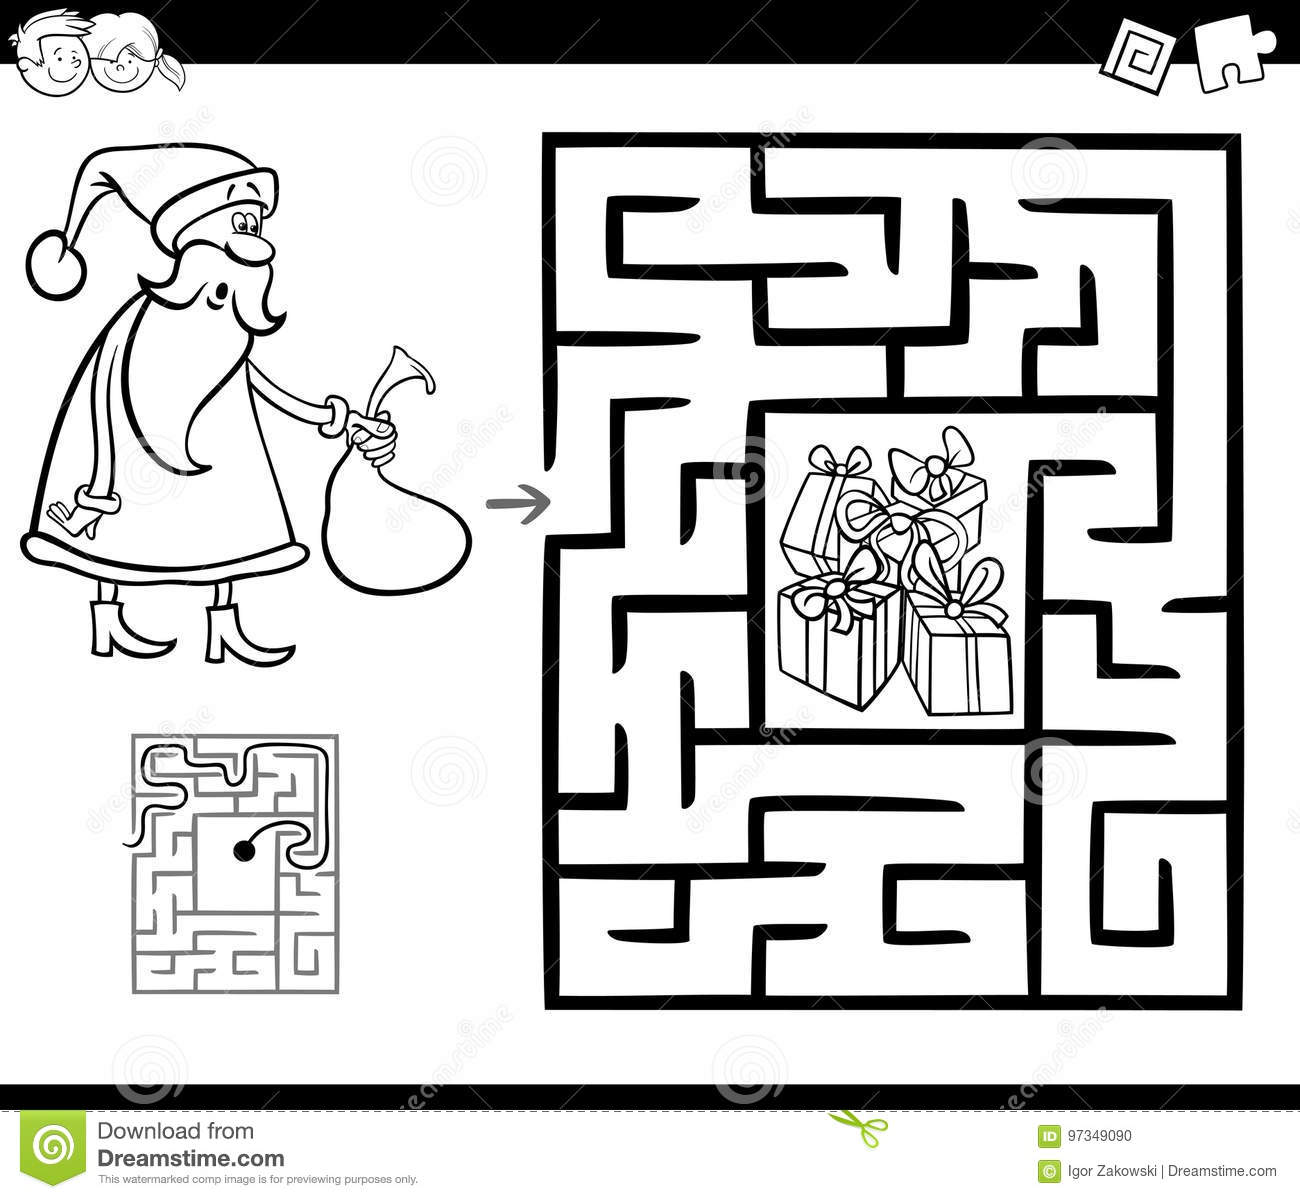 black and white cartoon illustration of education maze or labyrinth game for children with christmas santa claus coloring page